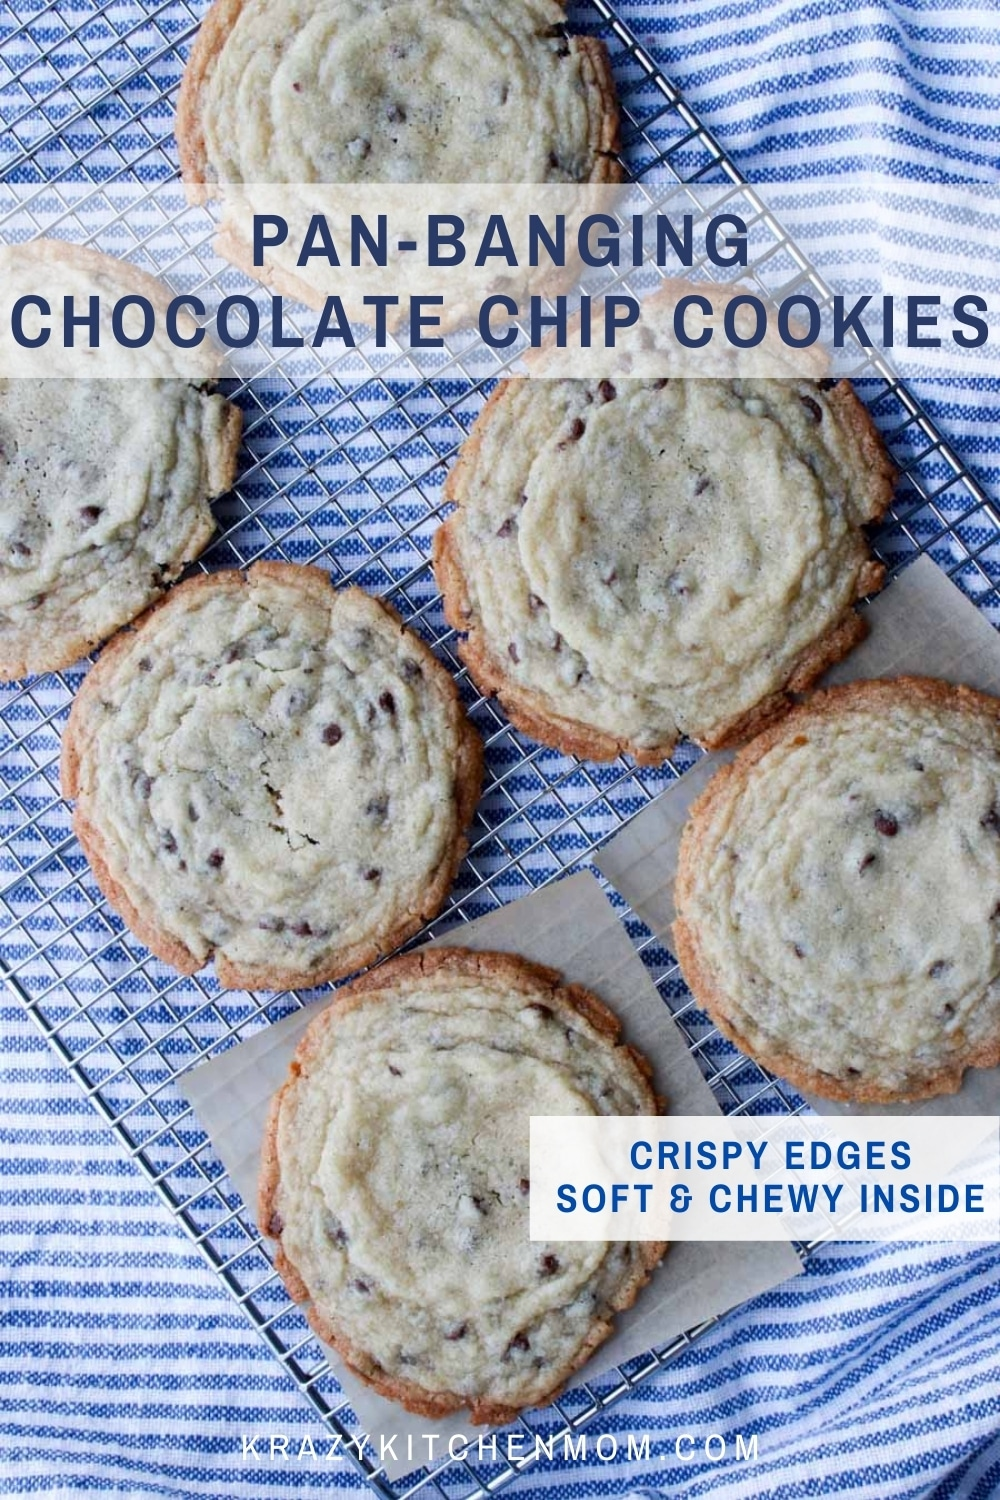 Giant chocolate chip cookies with crispy outside and soft and chewy inside.  via @krazykitchenmom